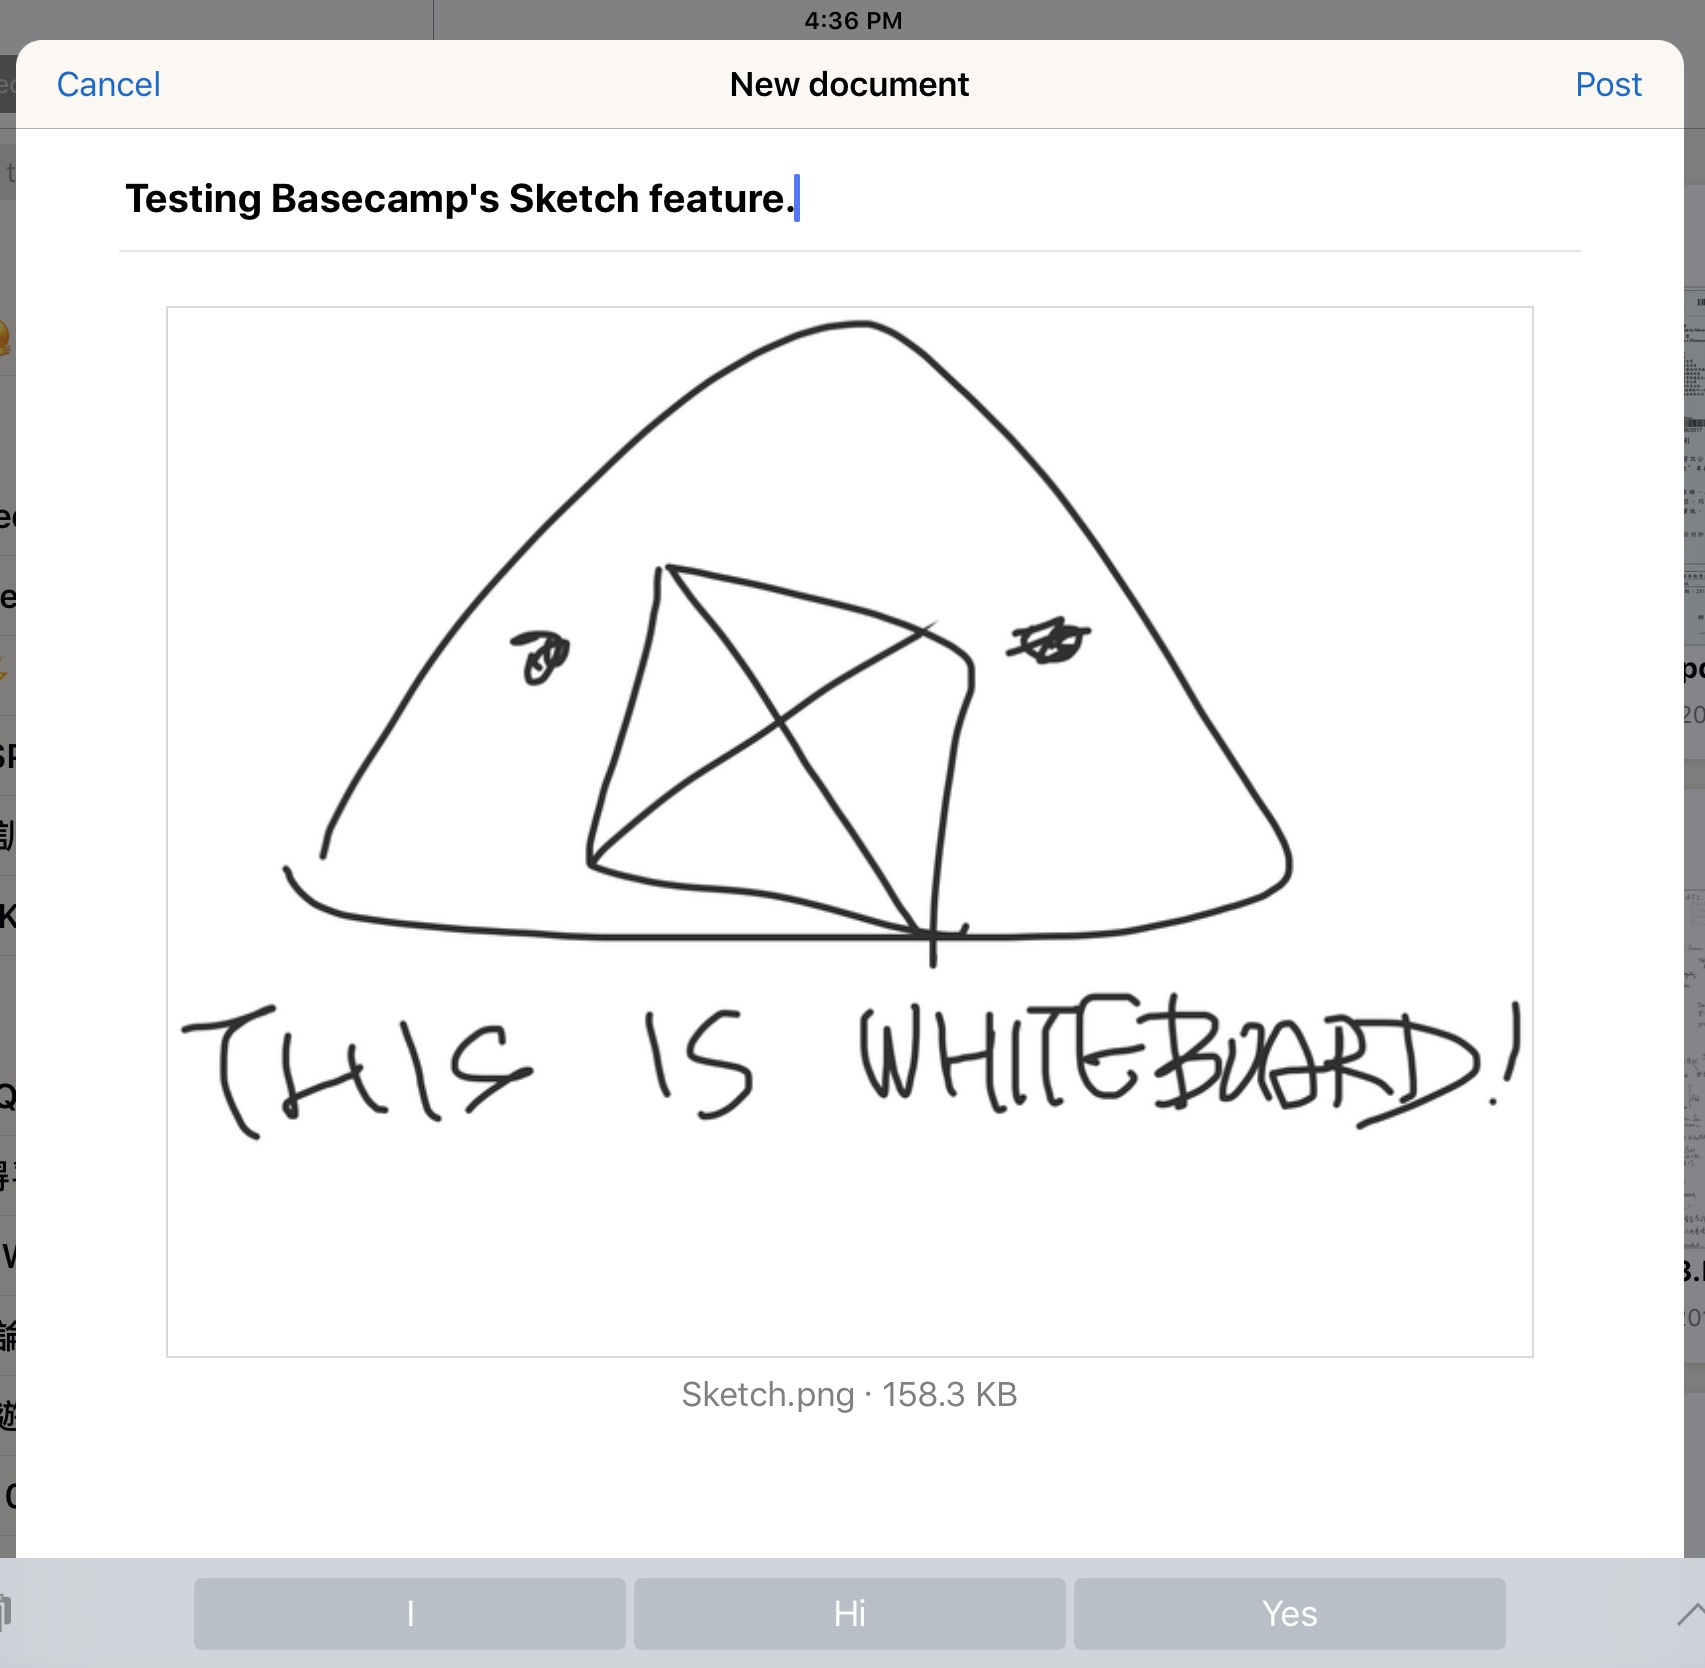 Testing Basecamp's sketch feature.